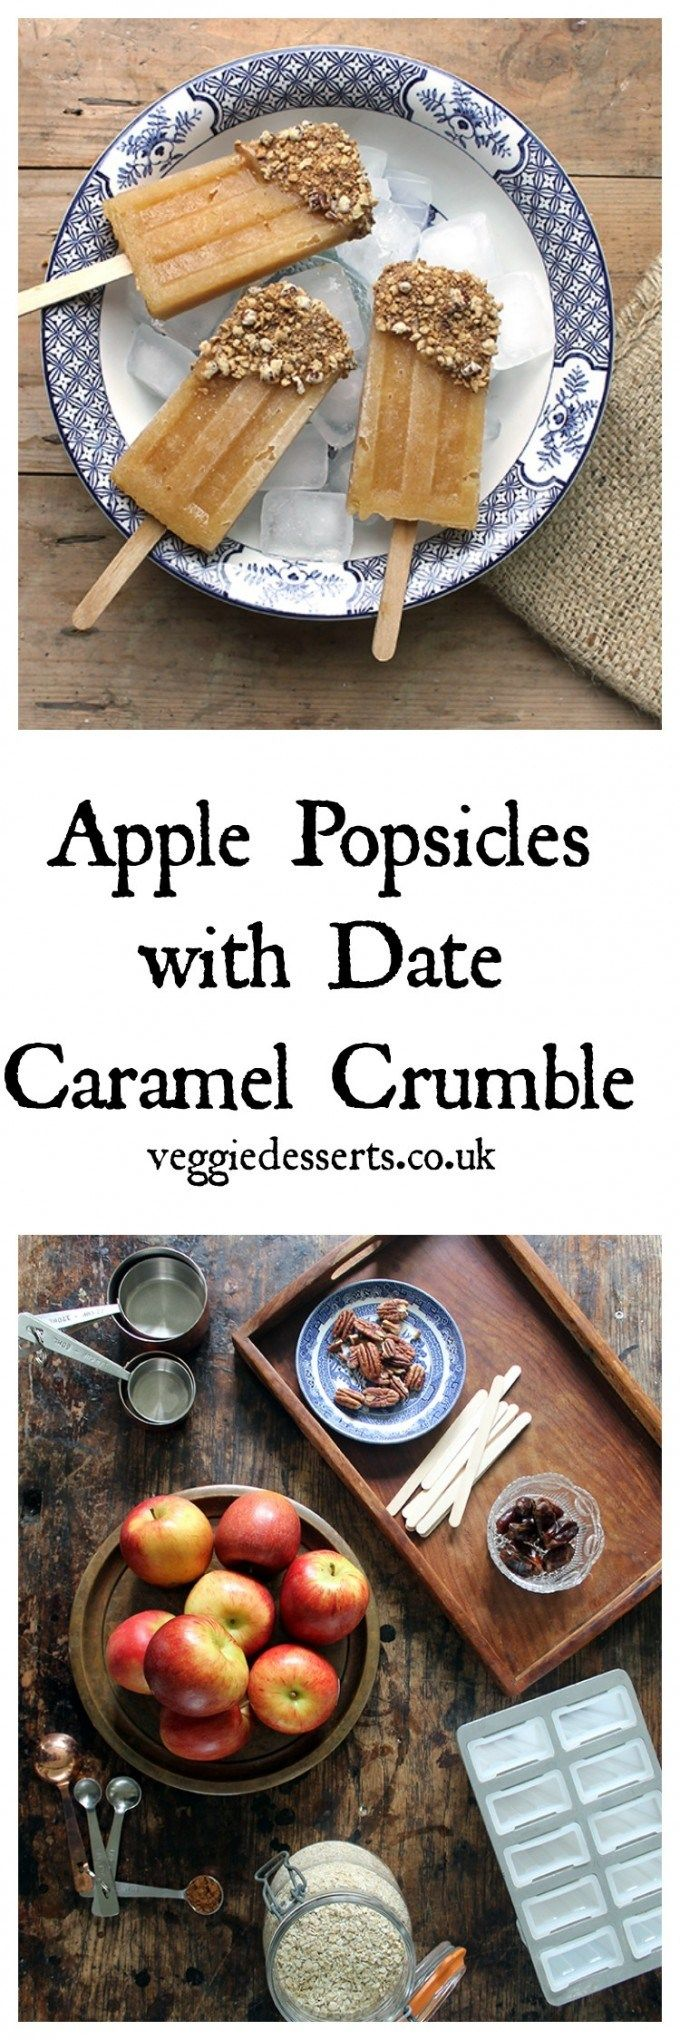 Apple Popsicles with Date Caramel and Crumble | Veggie Desserts Blog >>> Vegan and easily gluten-free.  >>> A great way to use up apples!